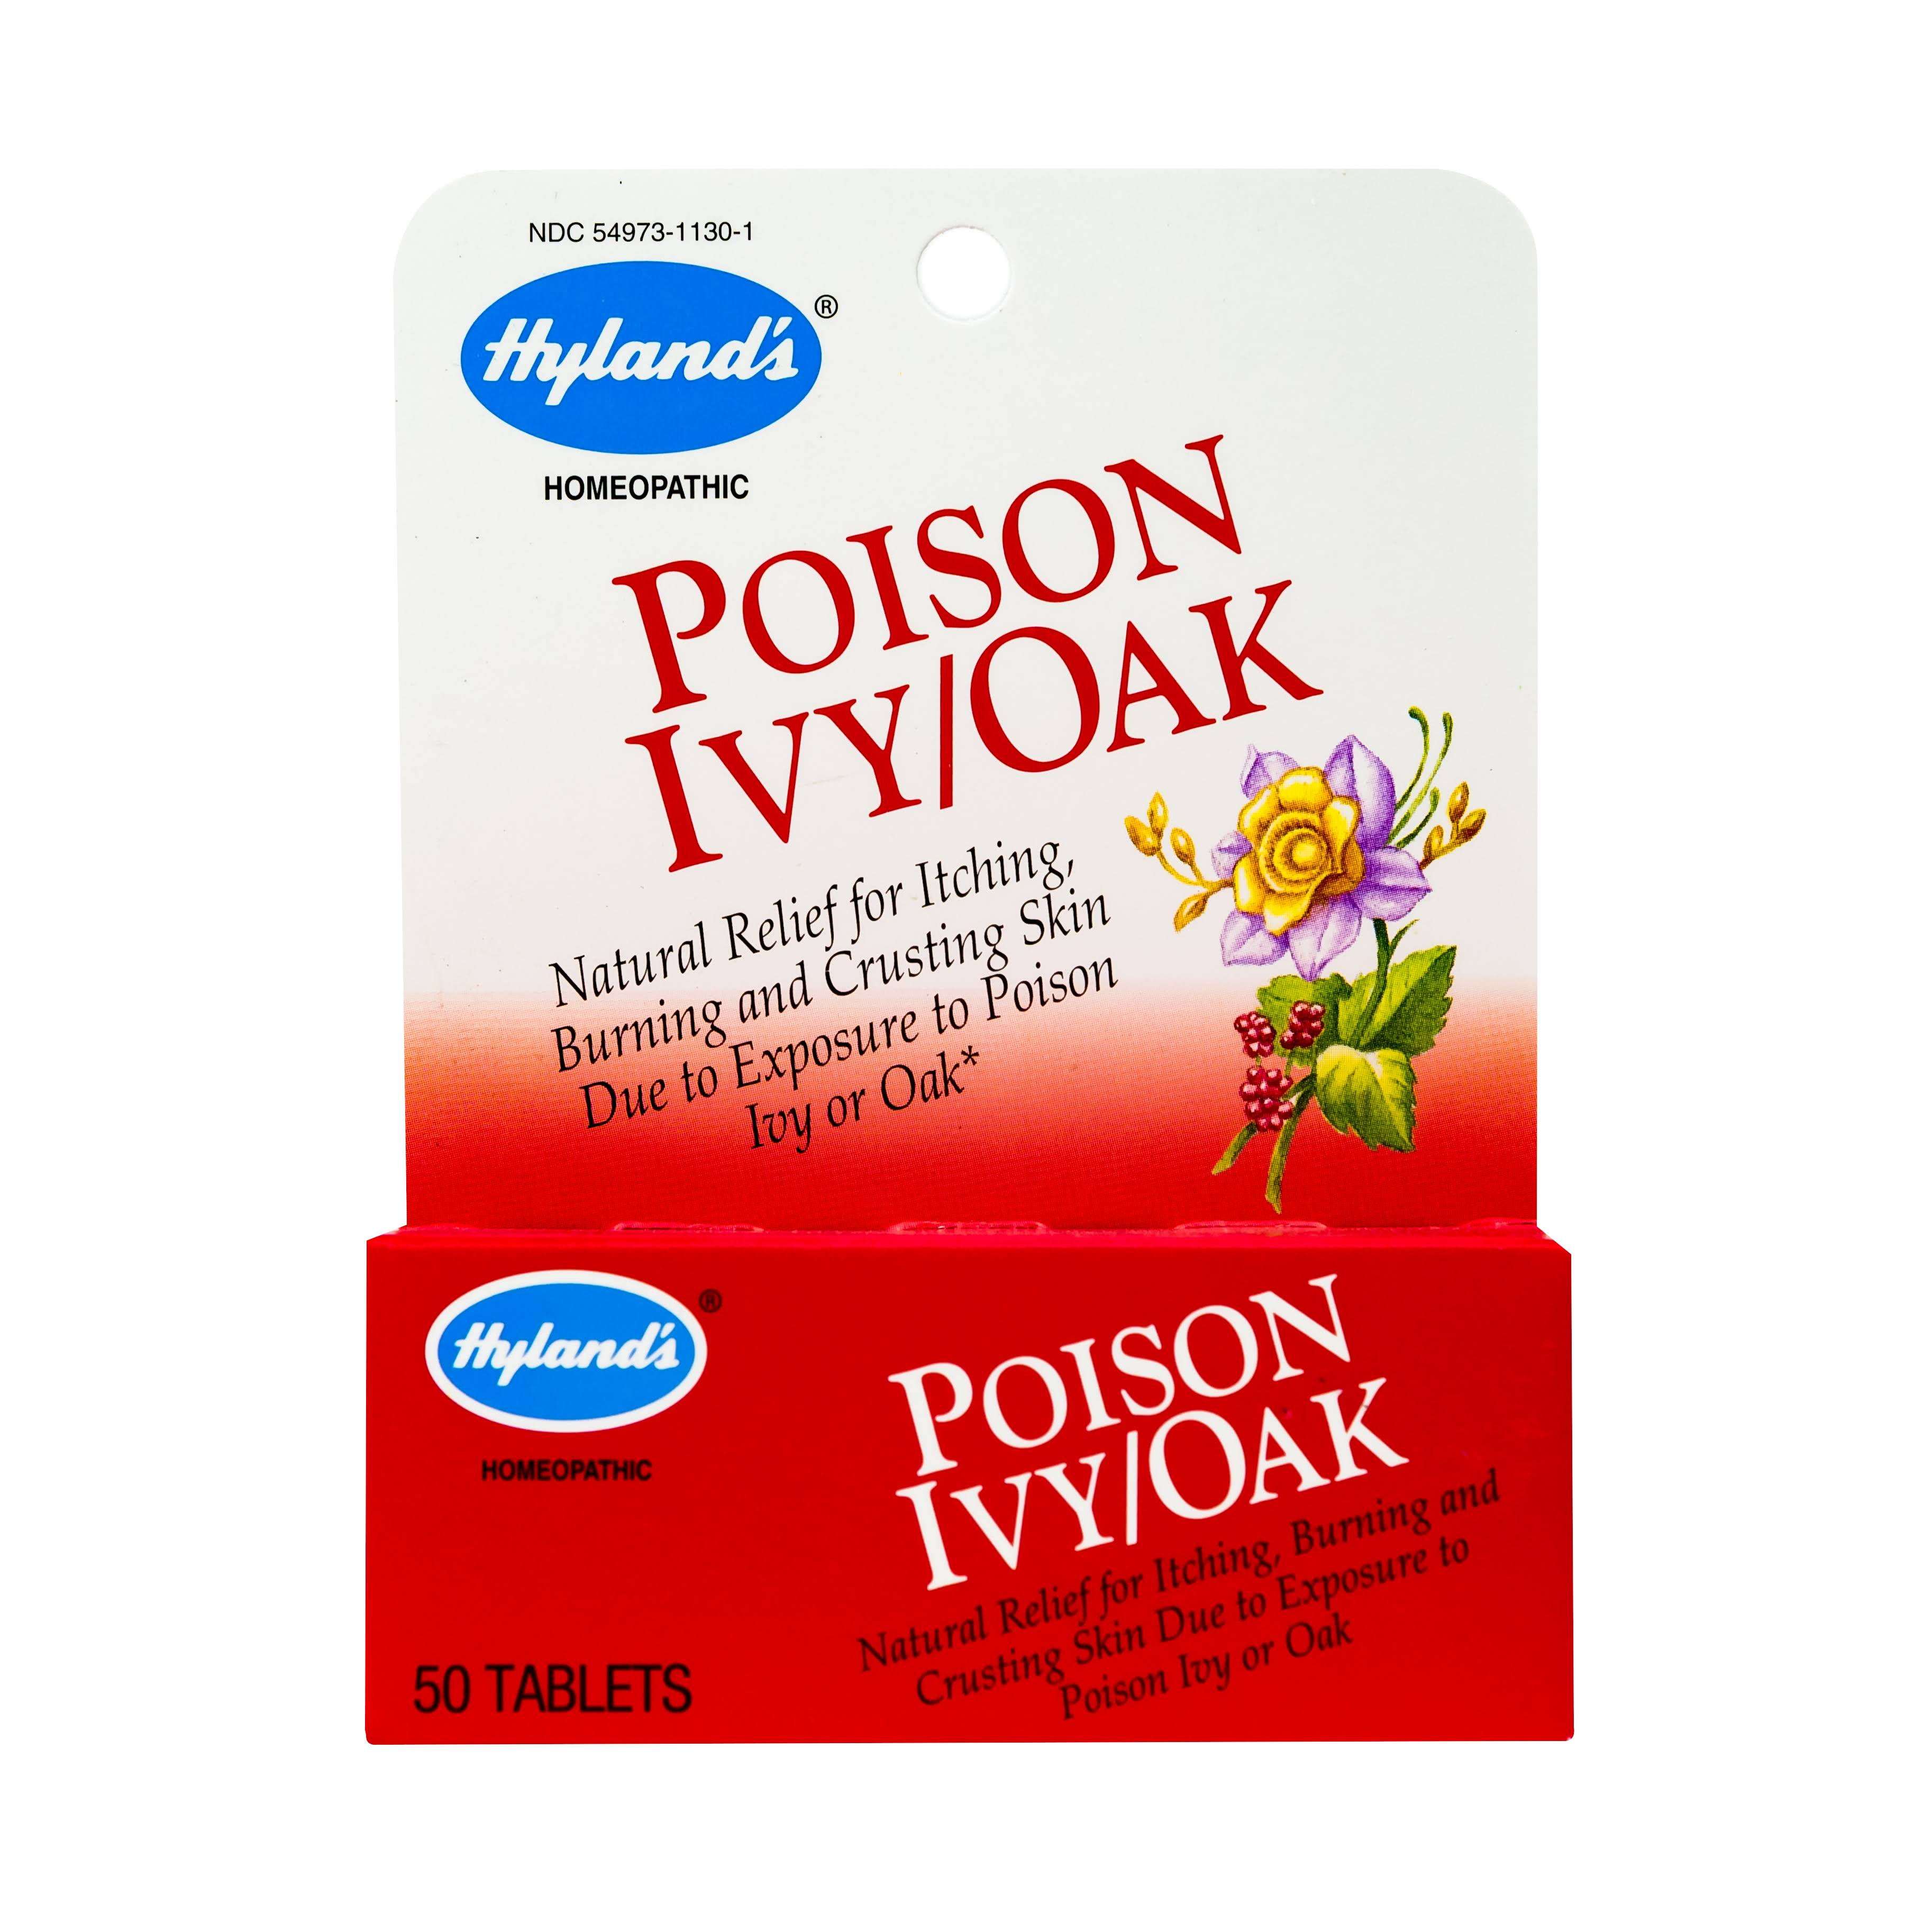 Hyland Poison Ivy Oak Pain Reliever - 50 Tablets